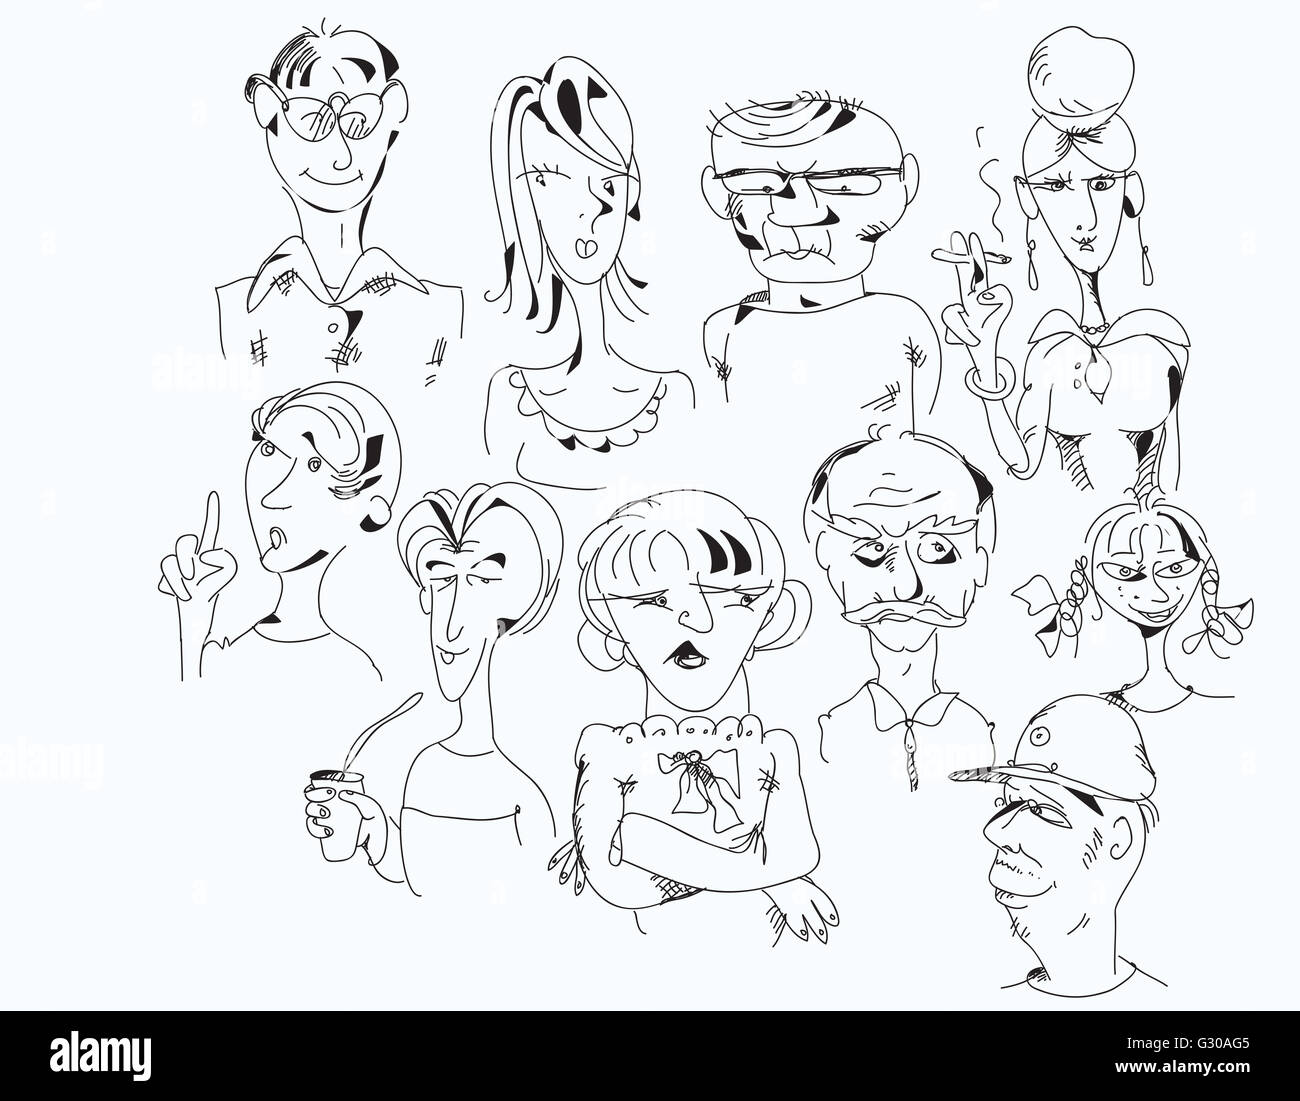 Various Characters - Stock Image